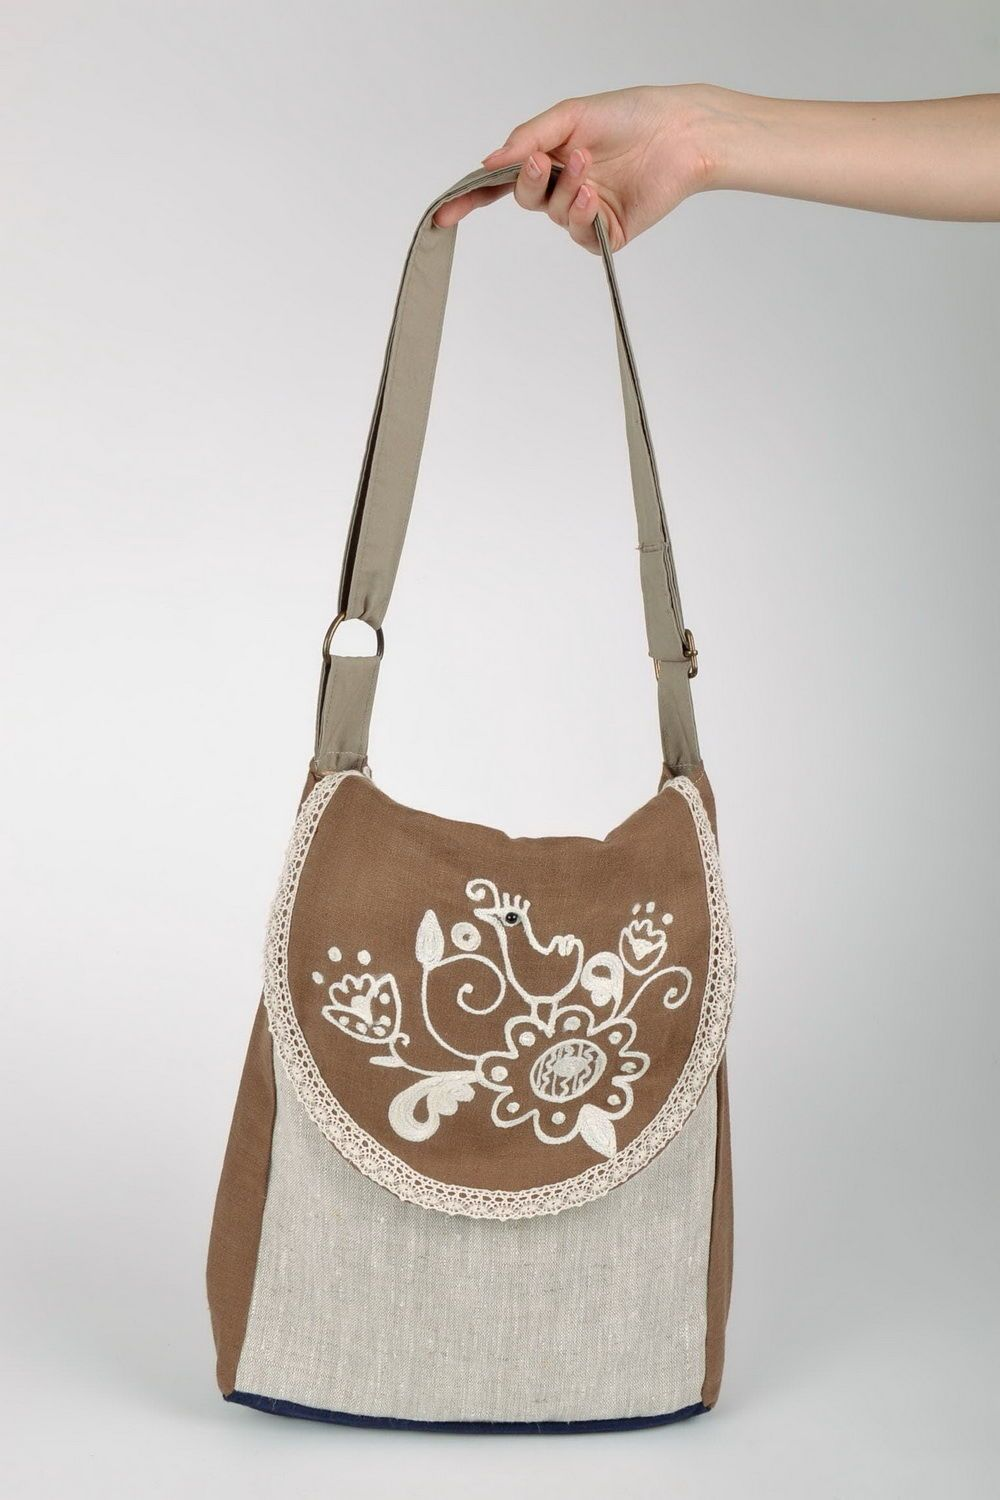 women's handbags Flax Shoulder Bag - MADEheart.com